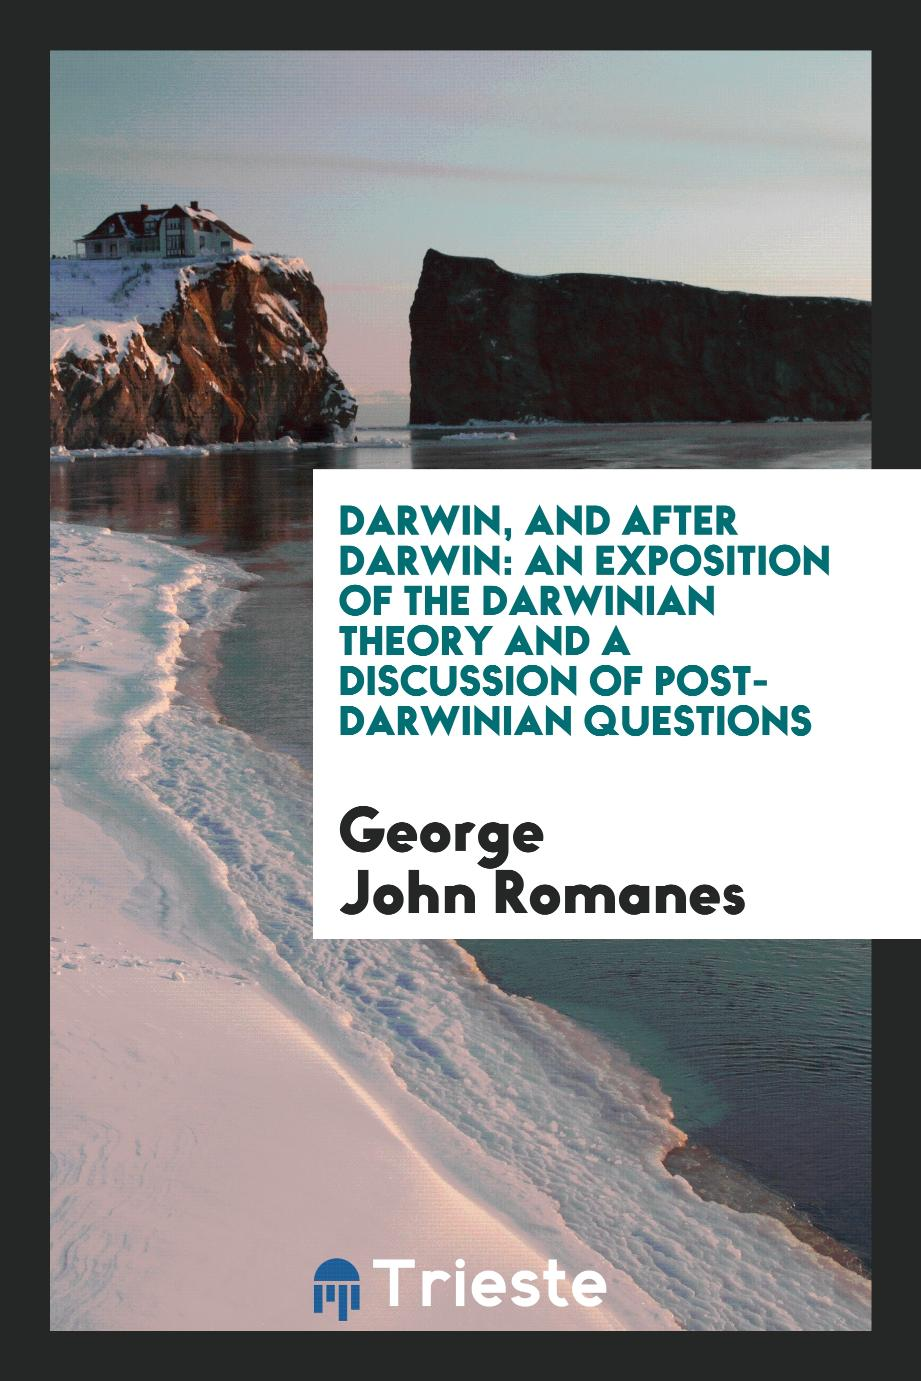 Darwin, and After Darwin: An Exposition of the Darwinian Theory and a Discussion of Post-Darwinian Questions